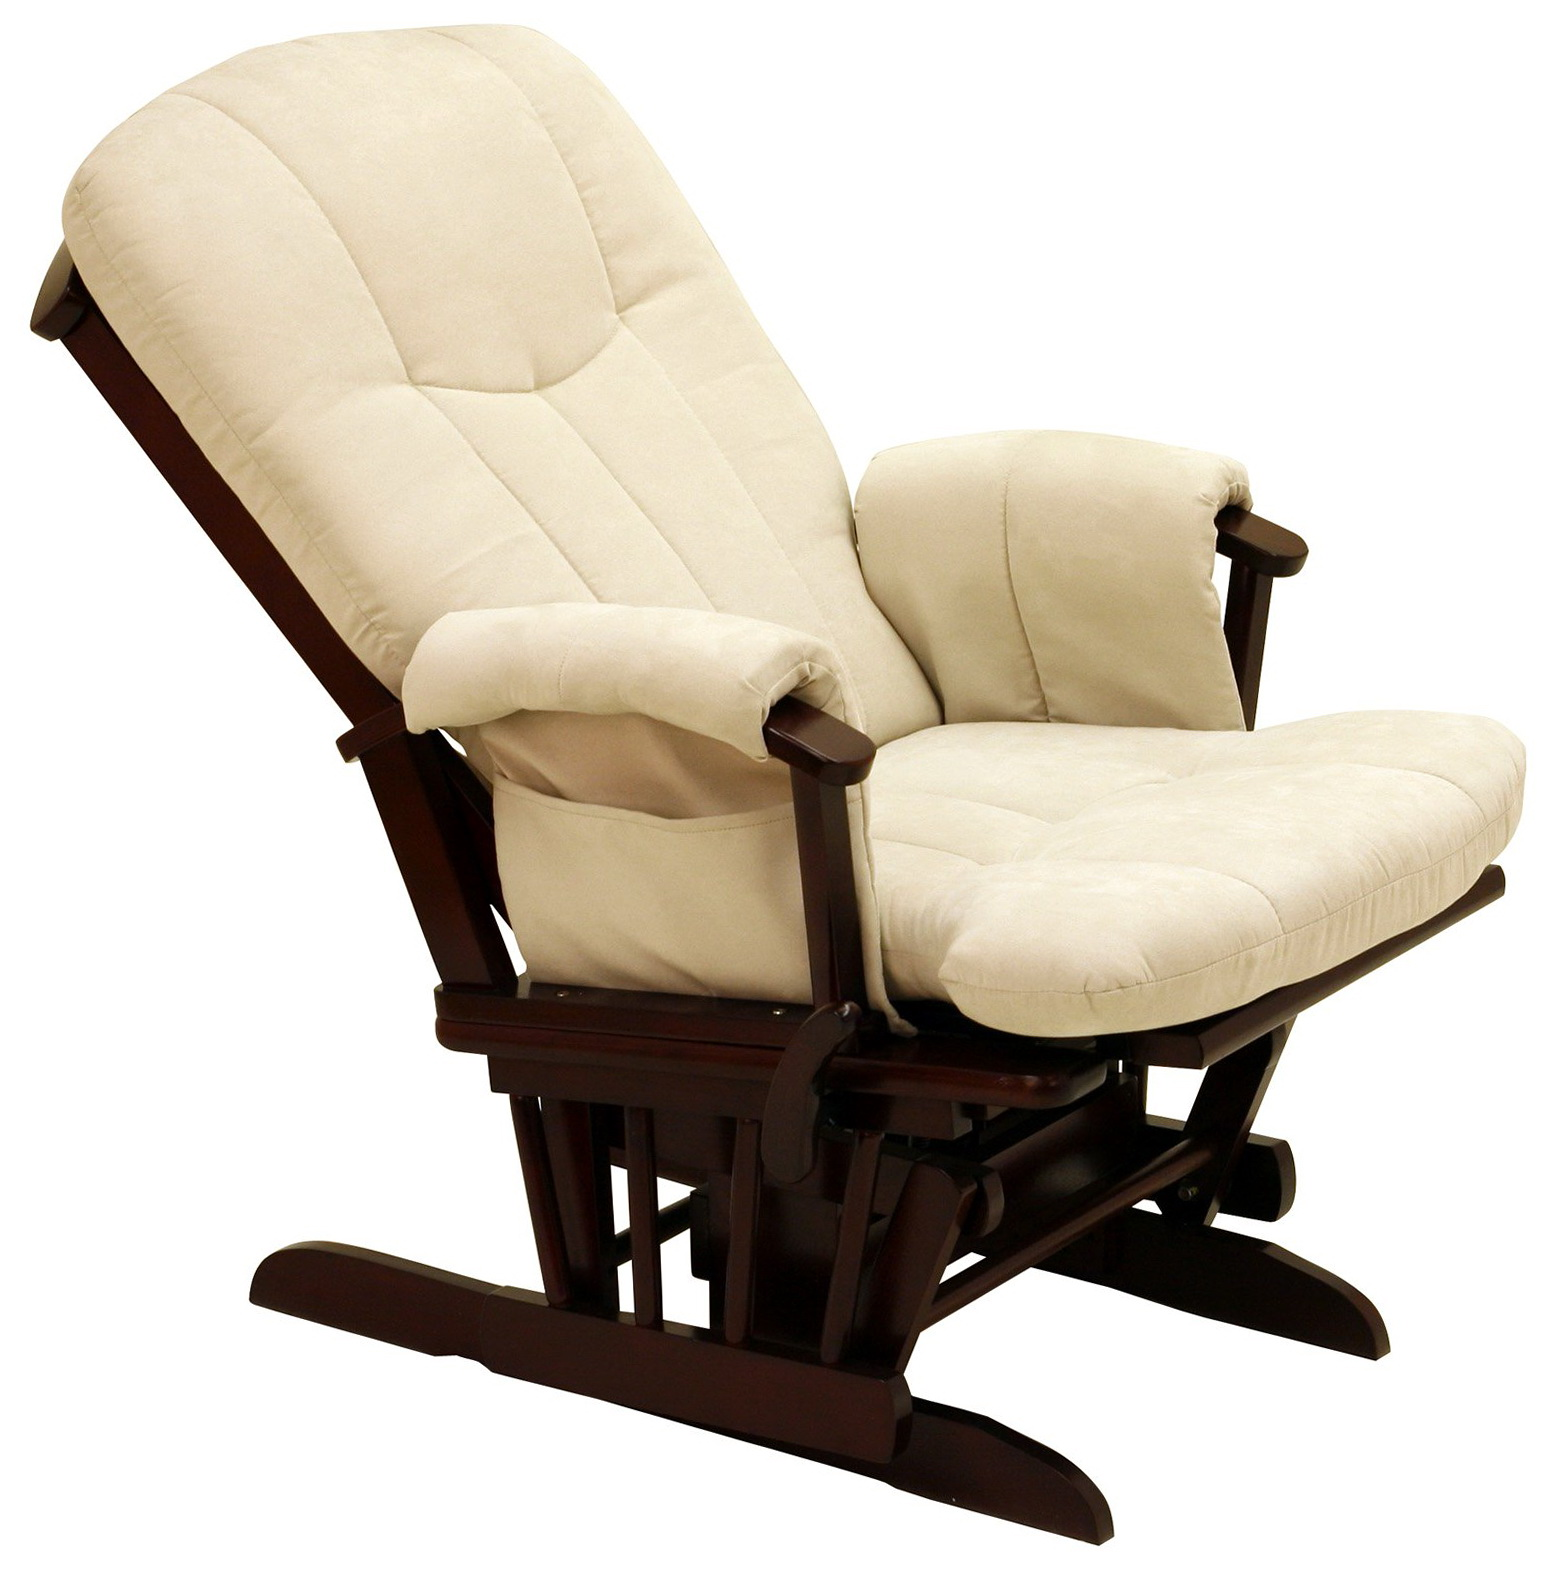 Gliding Rocking Chair Glider Rocking Chair Cushions Canada Home Design Ideas